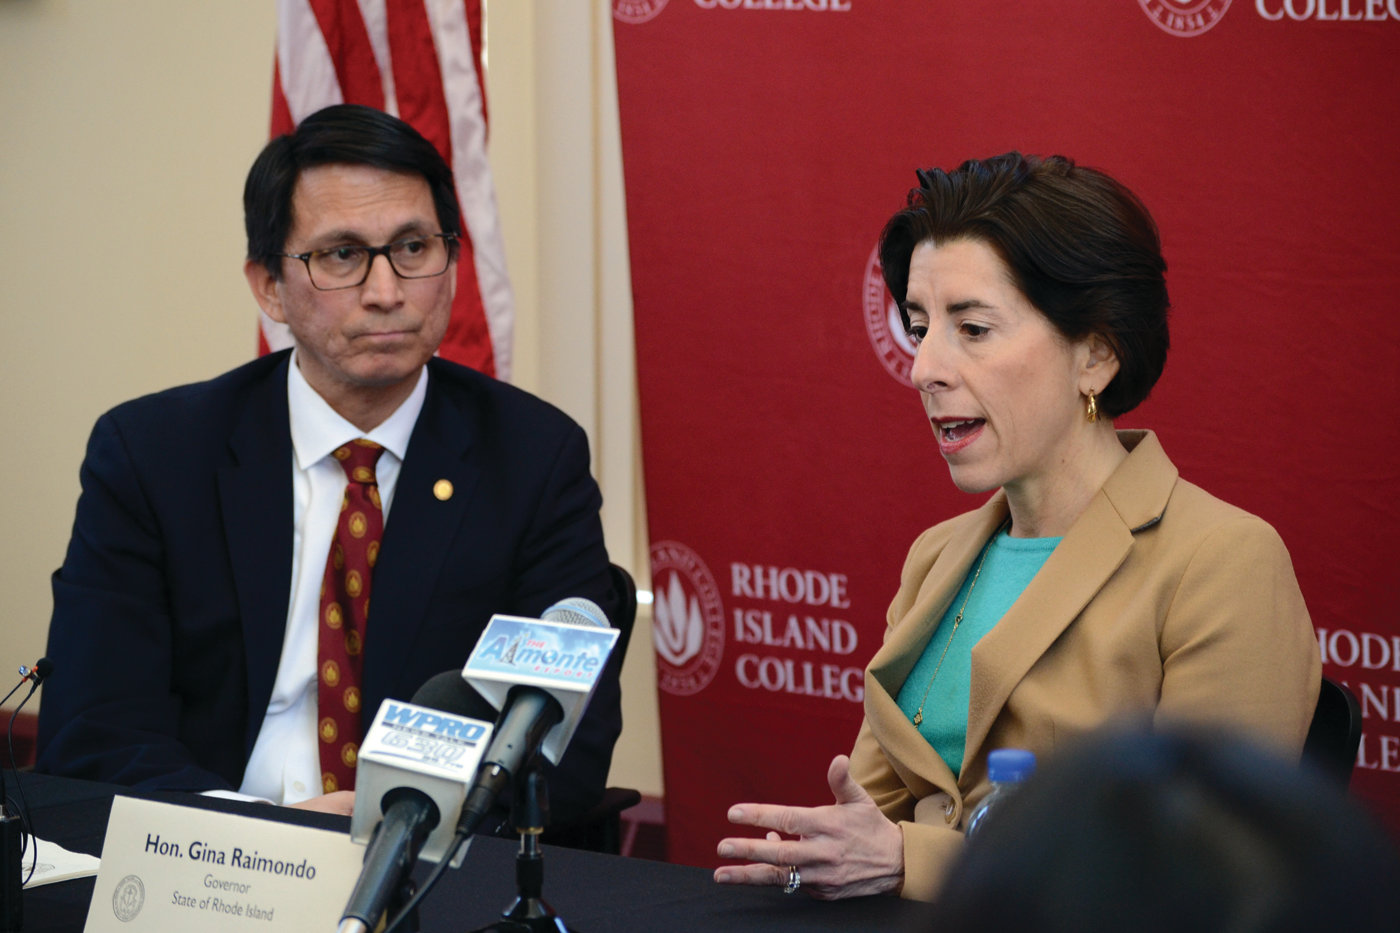 TOP LEVEL SUPPORT: Governor Gina Raimondo and RIC president Frank Sánchez discussed the potential expansion of the Rhode Island Promise program during a press conference last week.